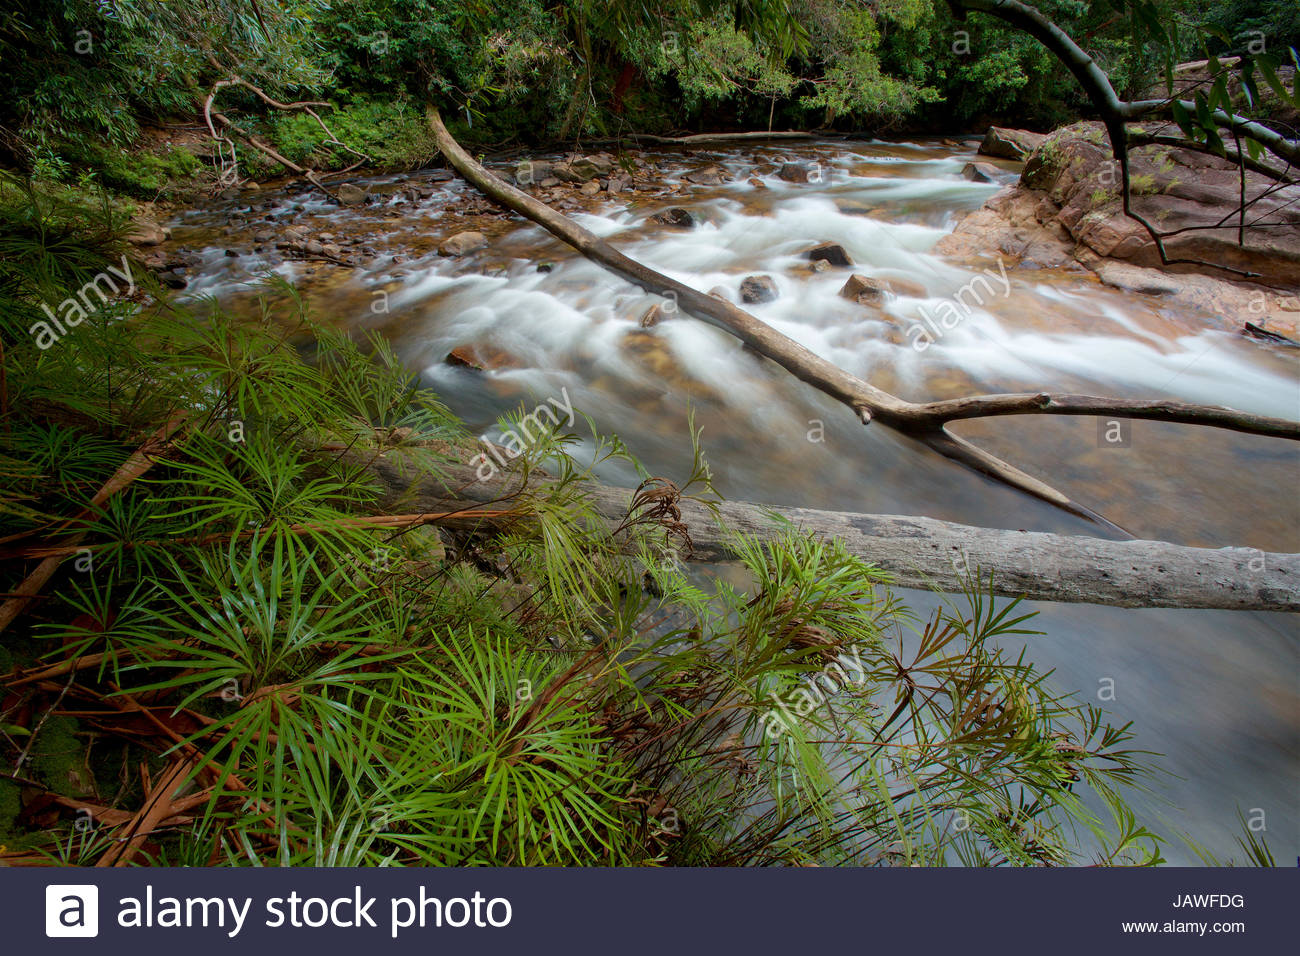 The Siduk River, deep in Gunung Palung National Park, flows through pristine rain forest. - Stock Image